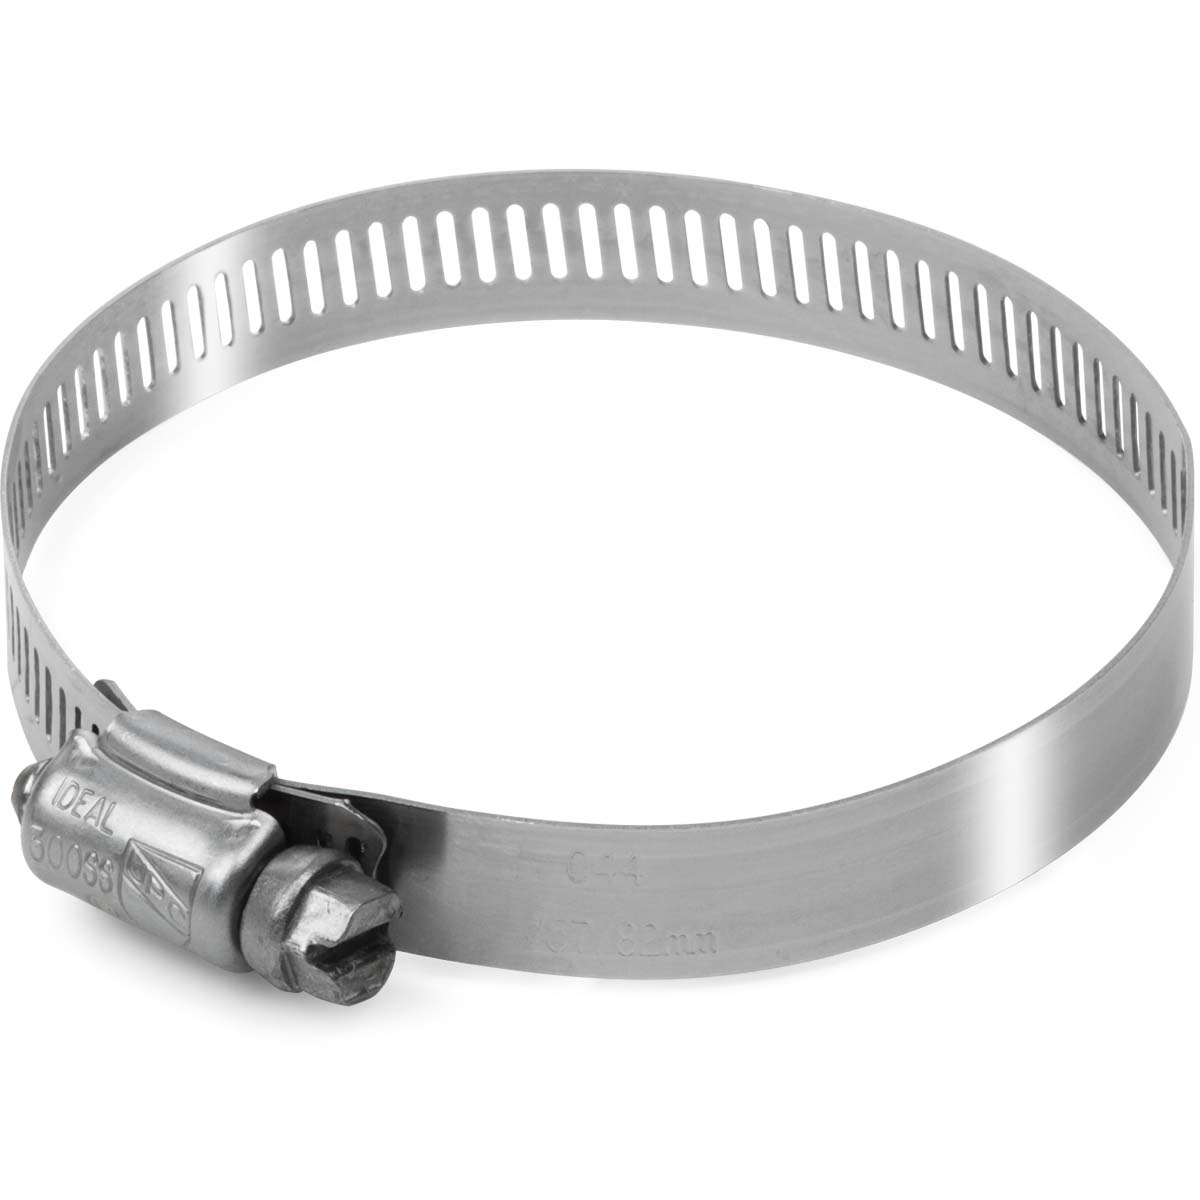 Stainless steel hose clamp kimball midwest